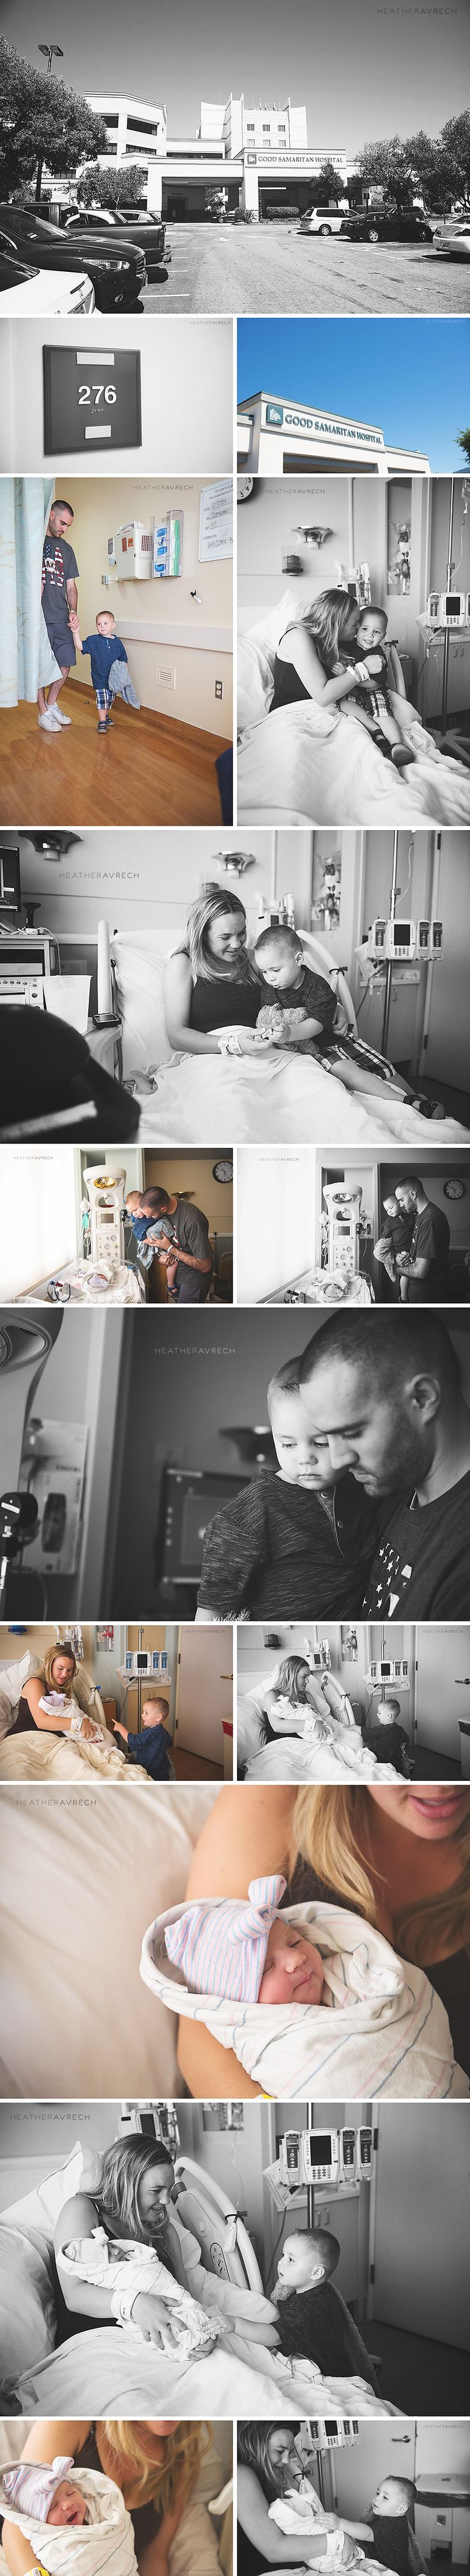 San+Jose+Newborn+Photographer--Heather Avrech Photography #fresh48 #helloworld #hospitalnewbornsession